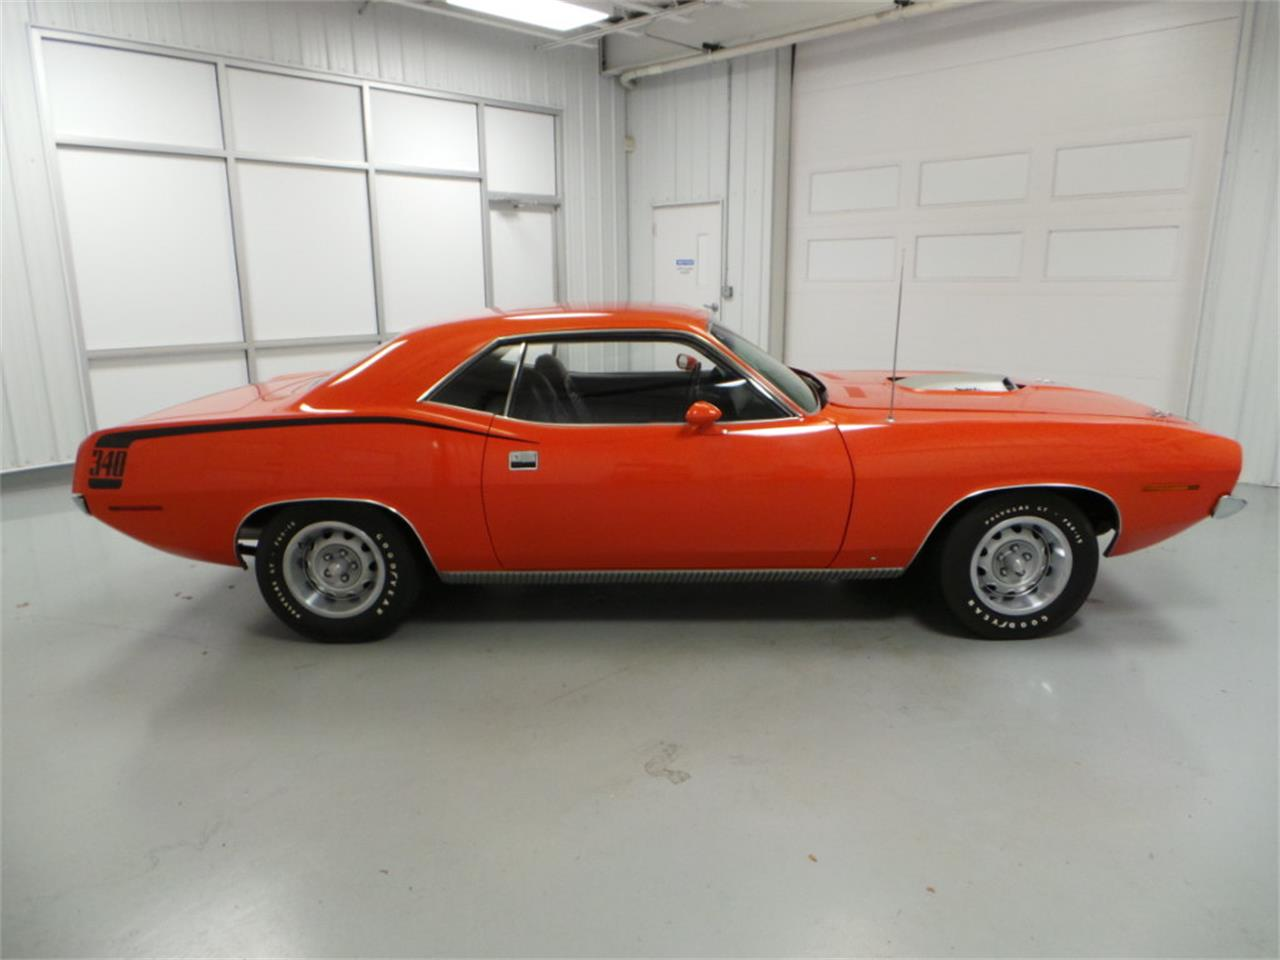 Large Picture of 1970 Cuda - $69,912.00 Offered by Duncan Imports & Classic Cars - JL8U